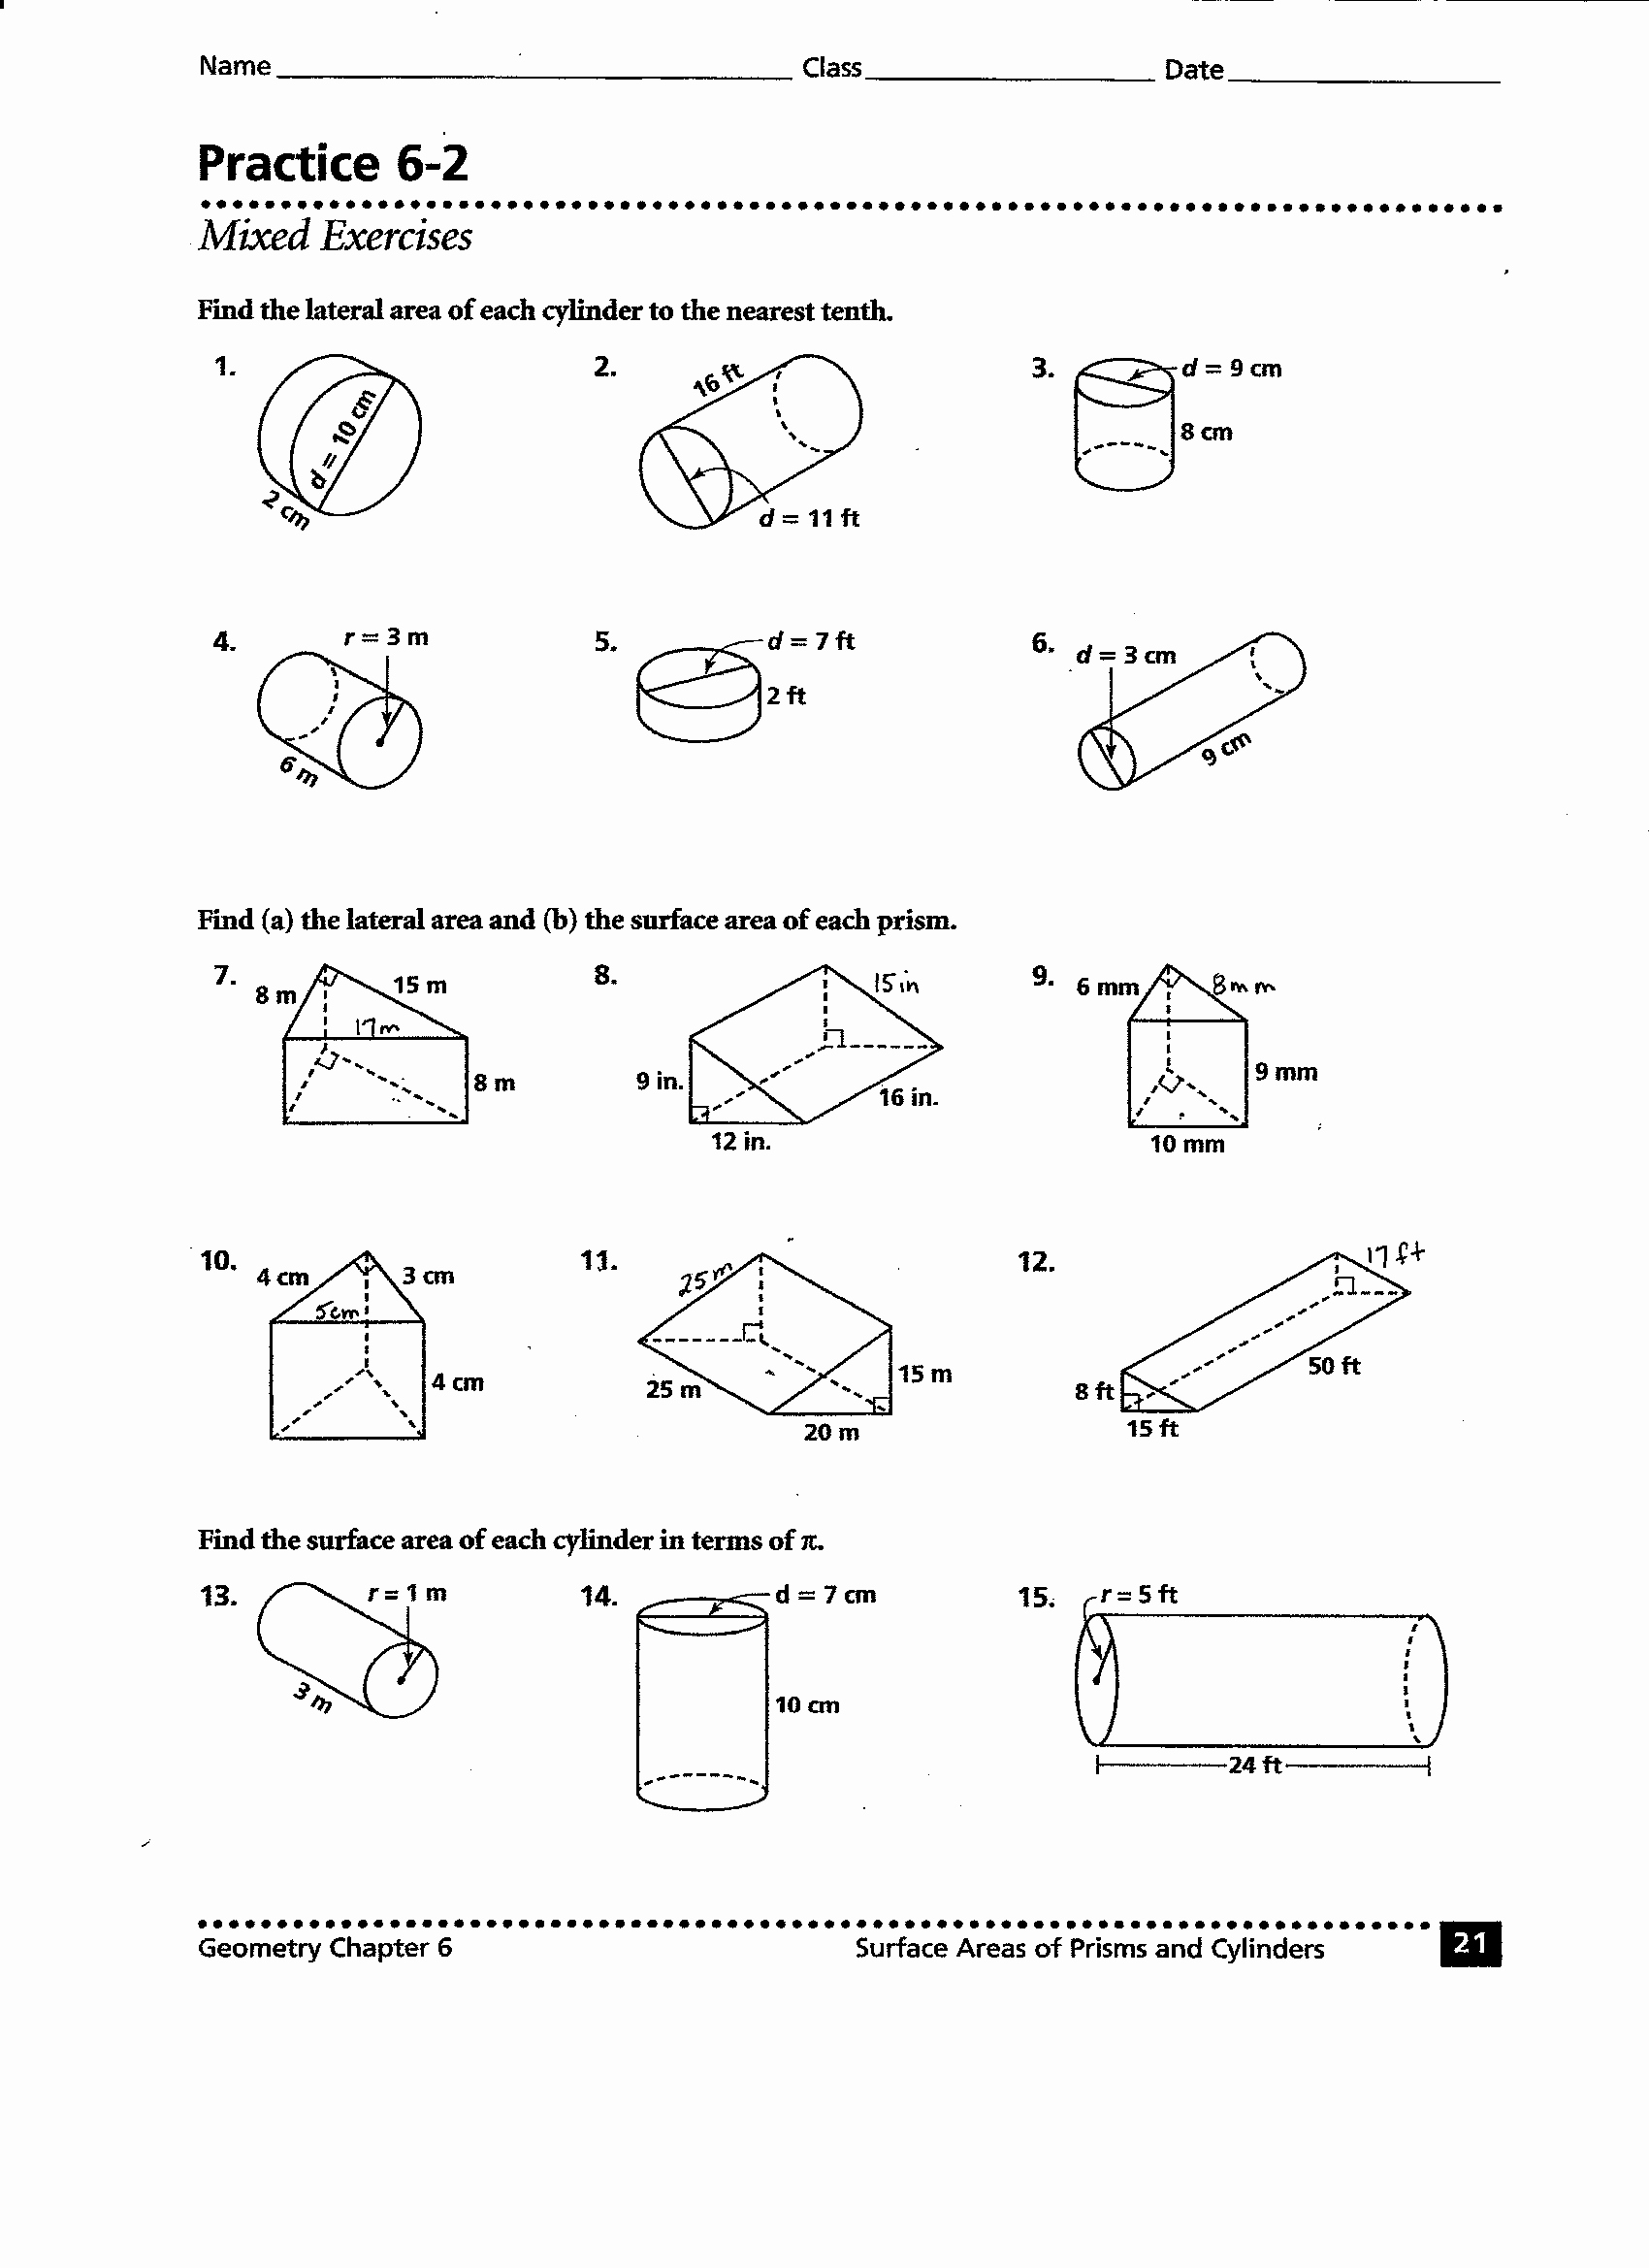 Volumes Of Prisms Worksheet Beautiful 41 Volume Prisms and Cylinders Worksheet Quiz